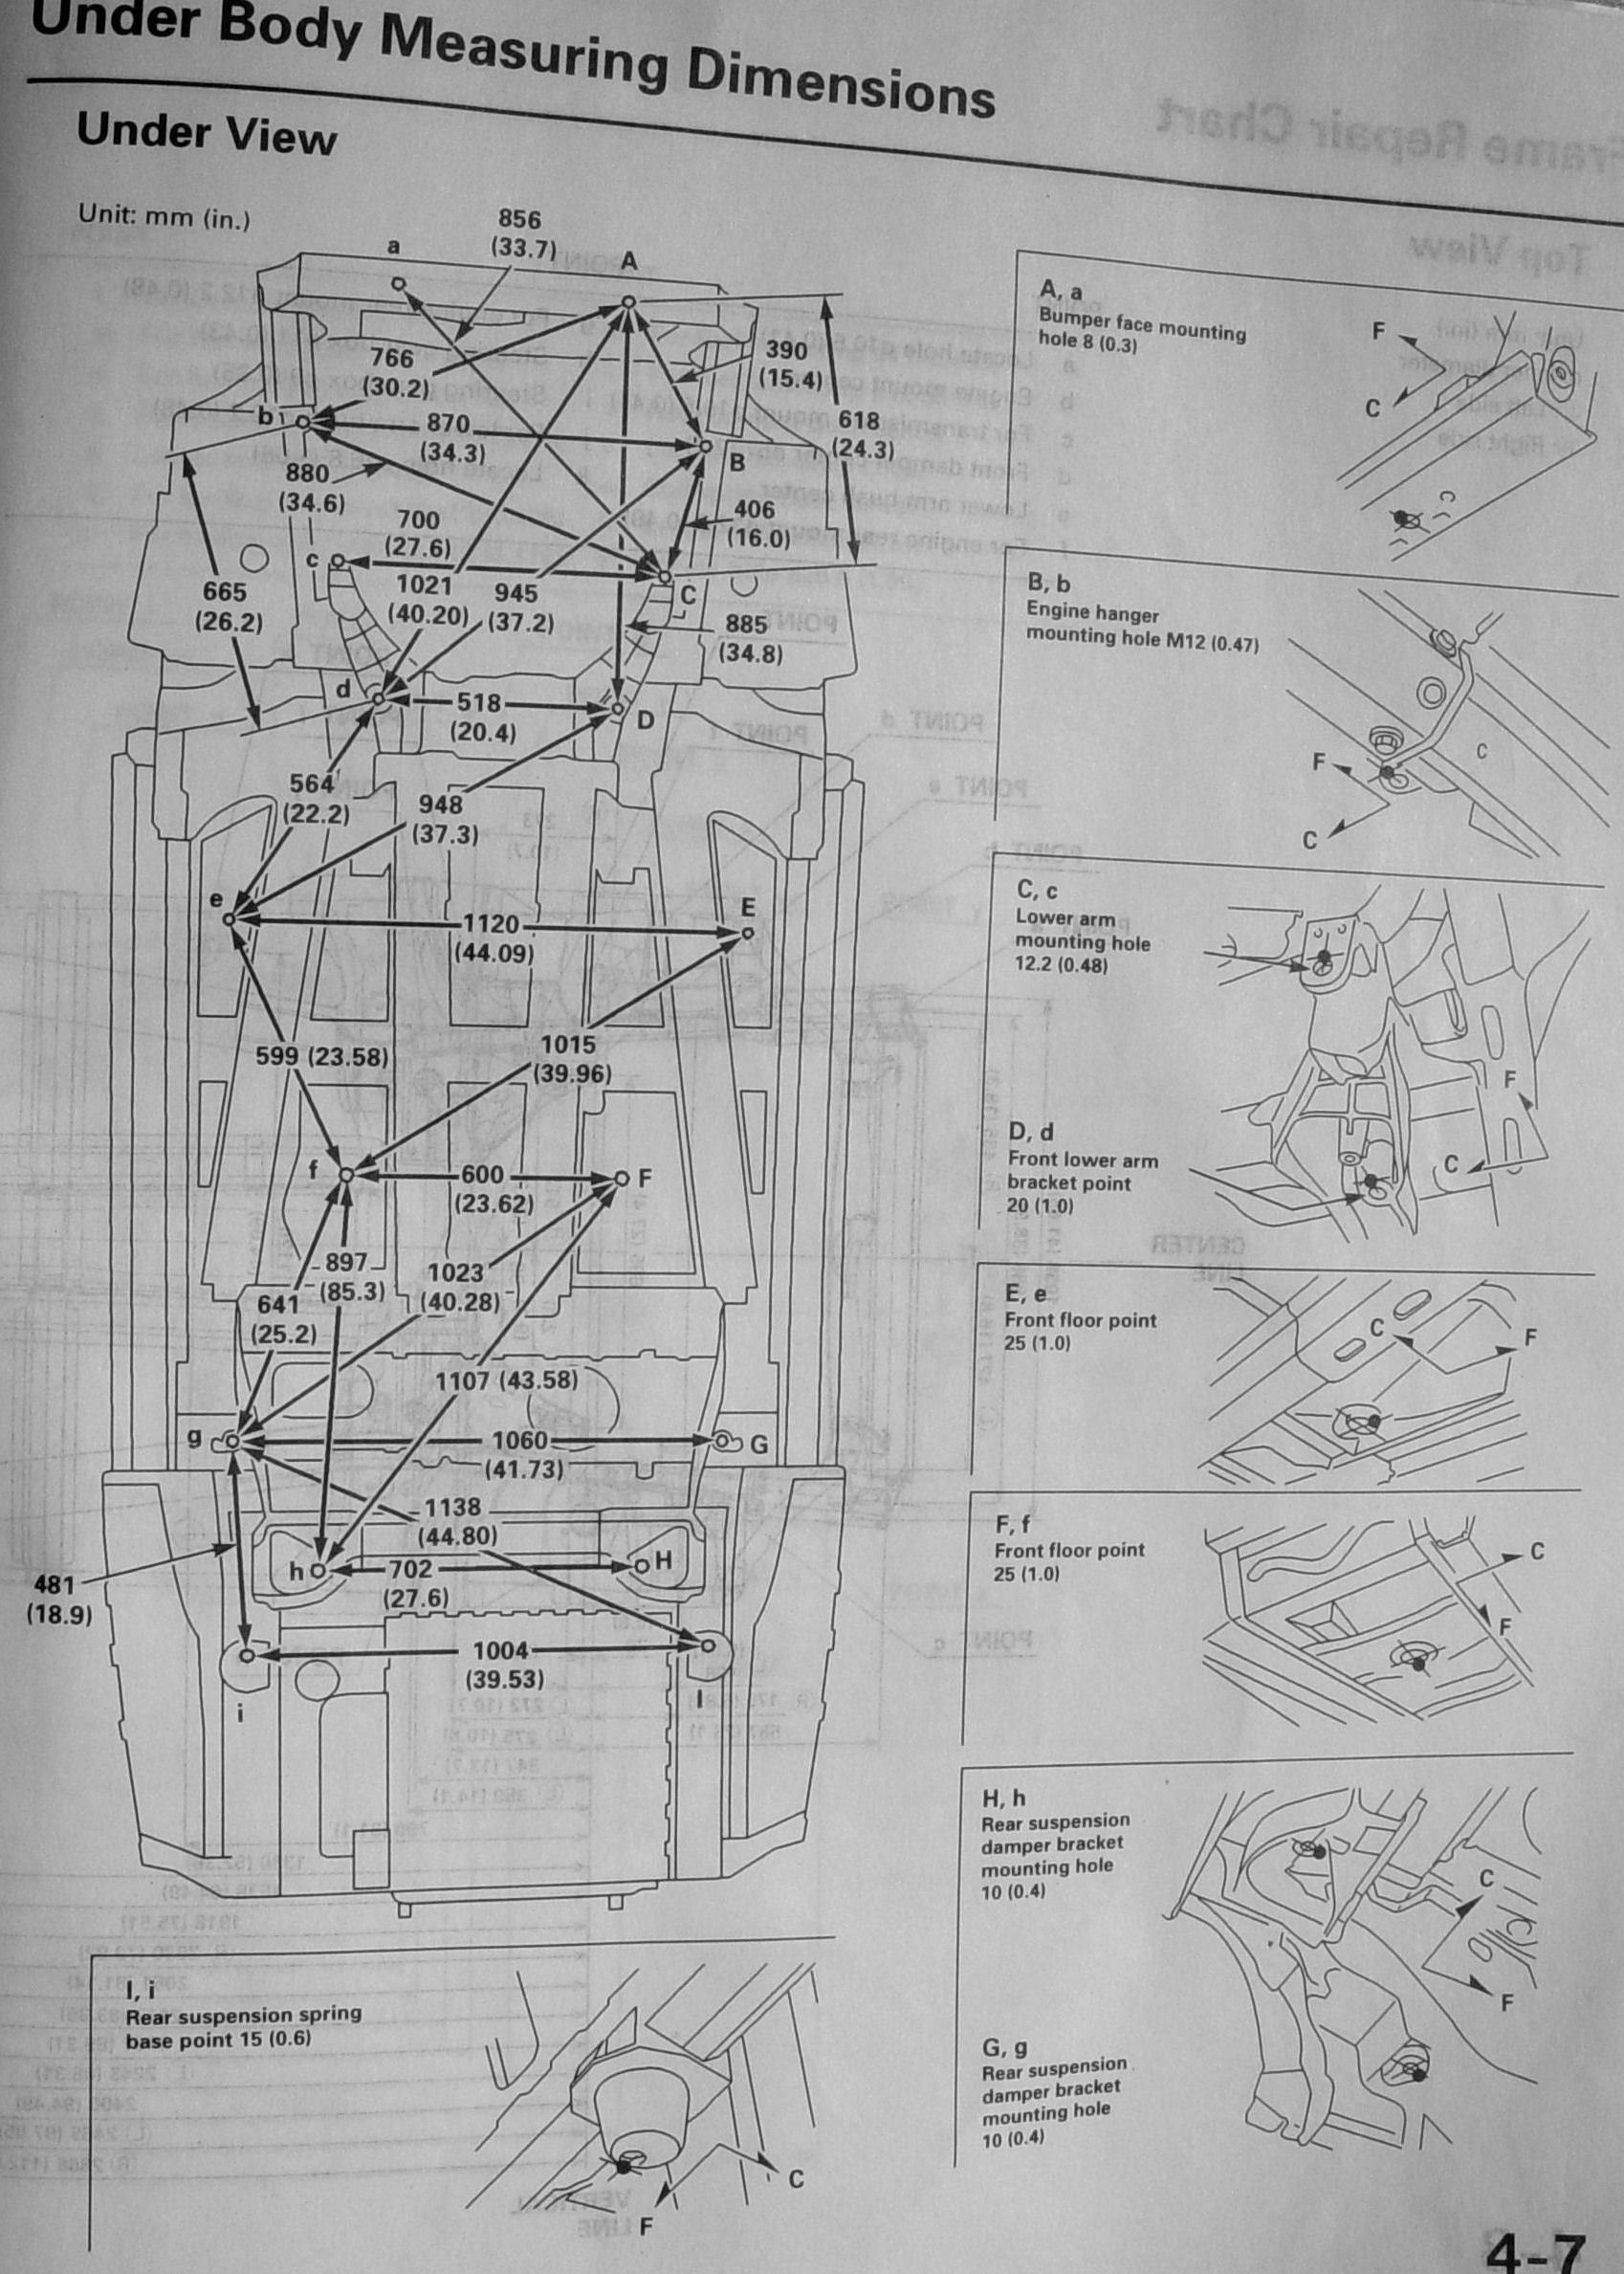 Downloads Mima Honda Insight Modified Integrated Motor Assist Wiring Diagram 2005 Civic Hybrid Download Bottom Frame Measurements